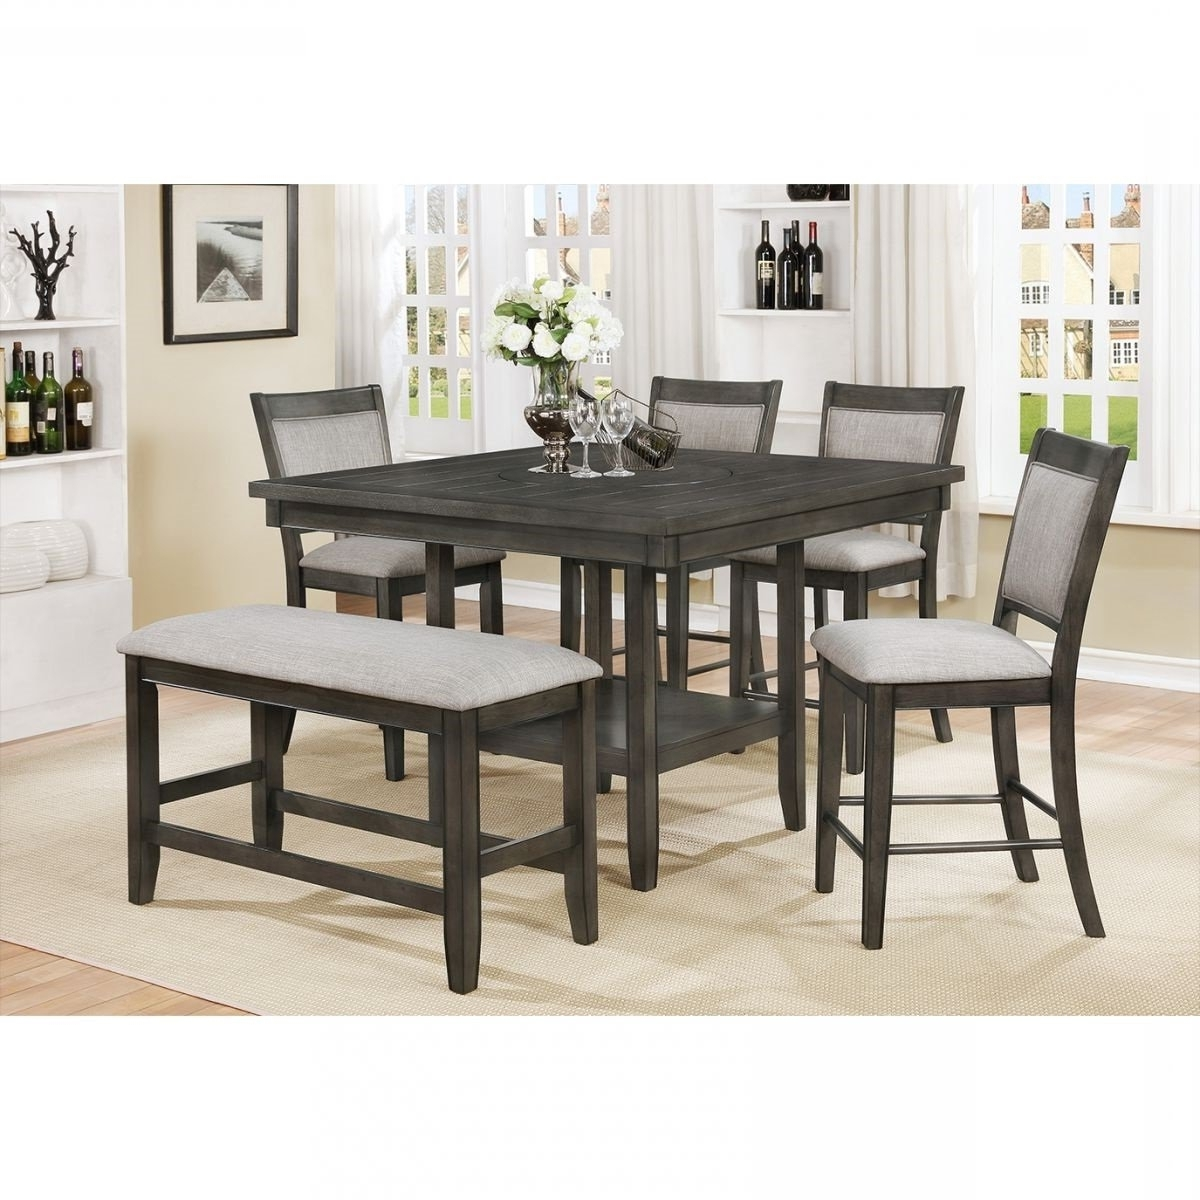 Most Popular Fulton Gray 6 Pc Counter Height Dining Room (View 14 of 25)